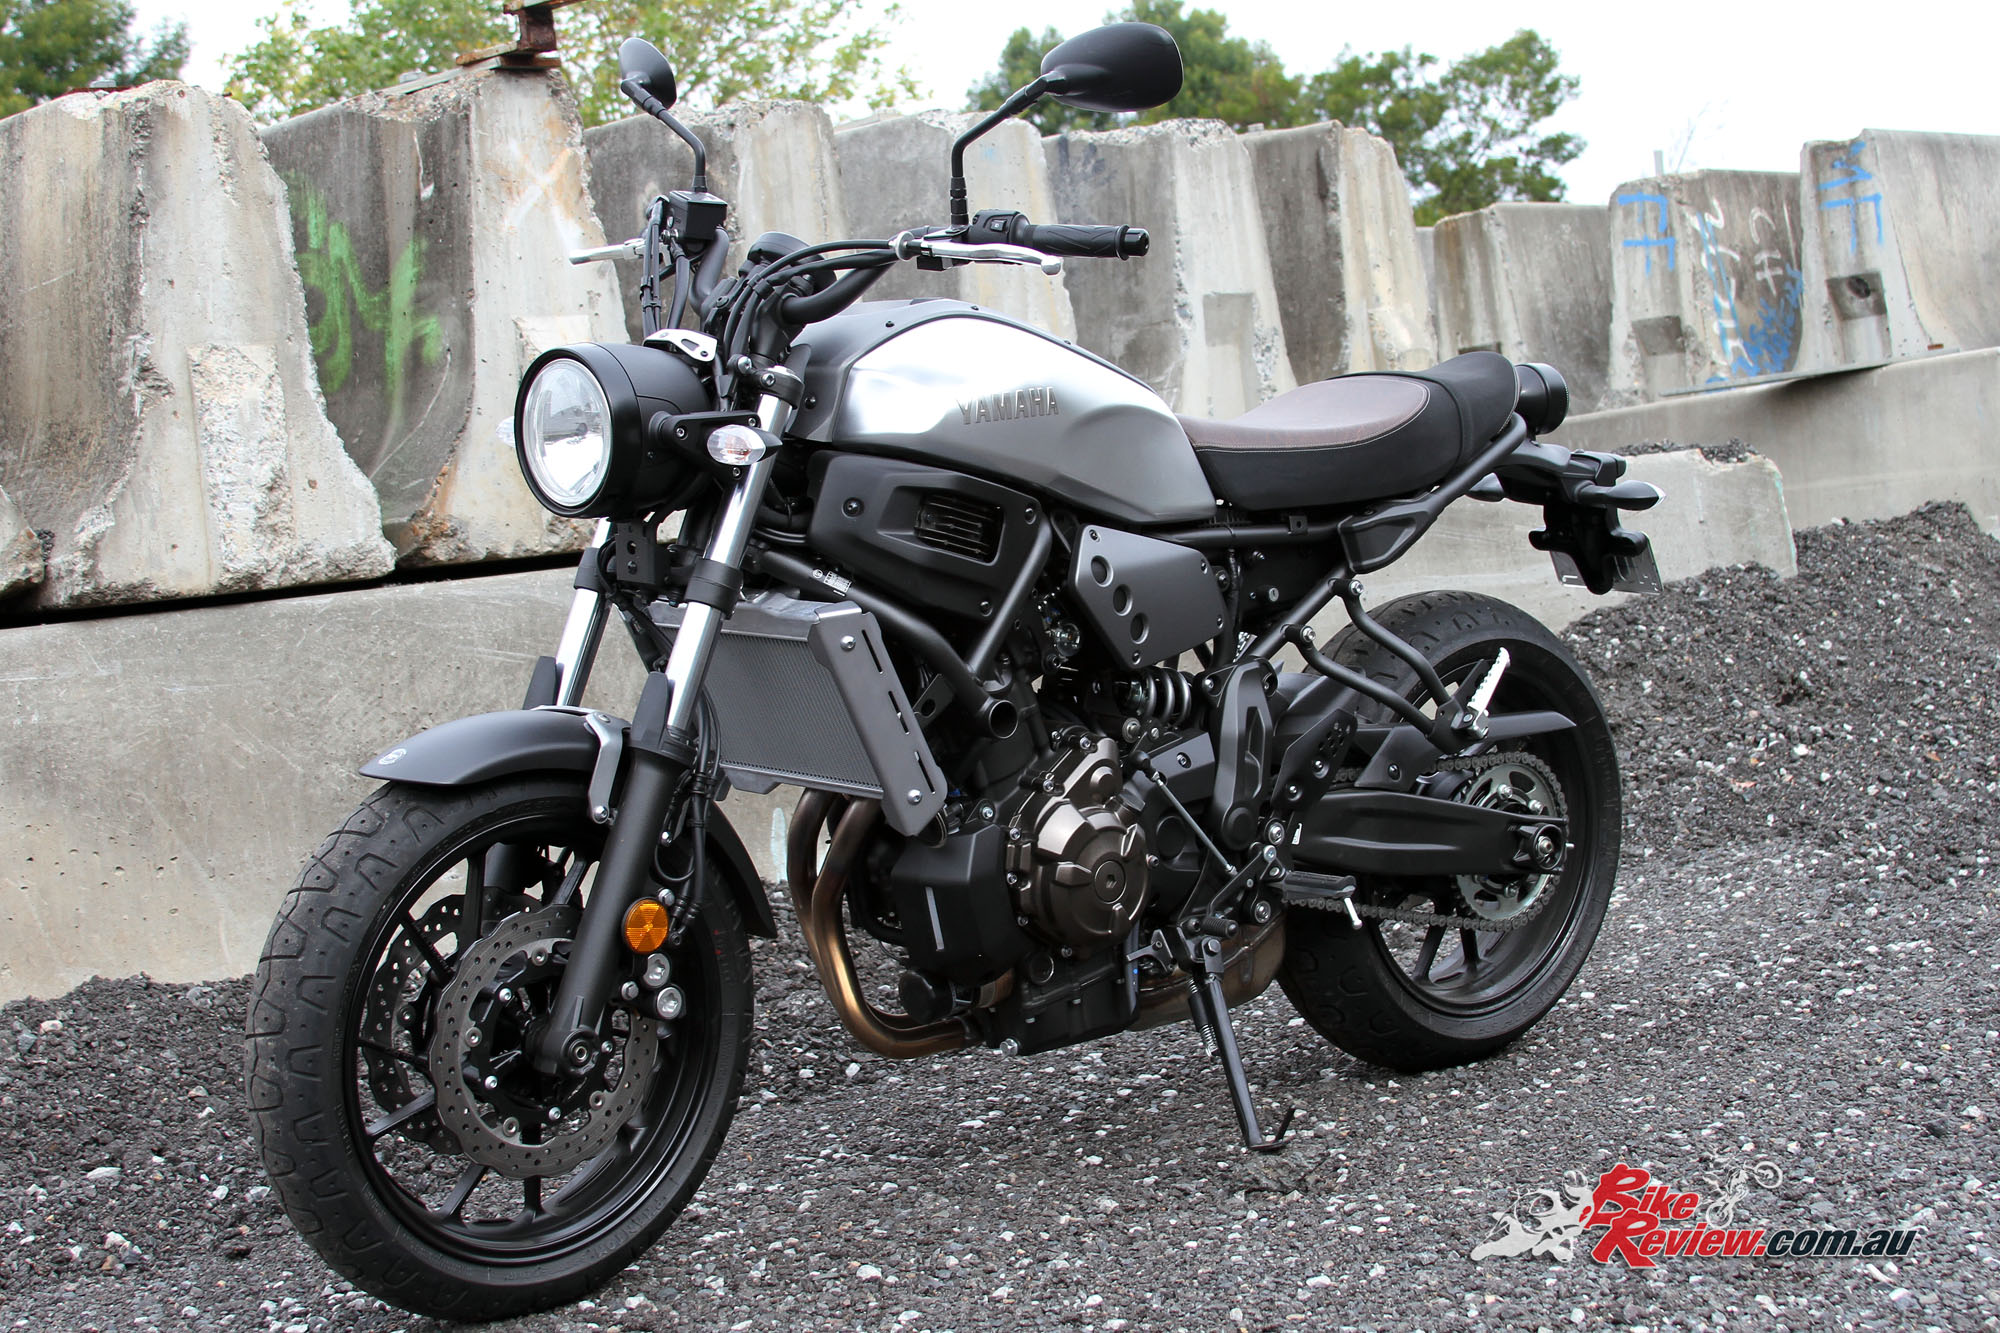 review 2016 yamaha xsr700 lams bike review. Black Bedroom Furniture Sets. Home Design Ideas